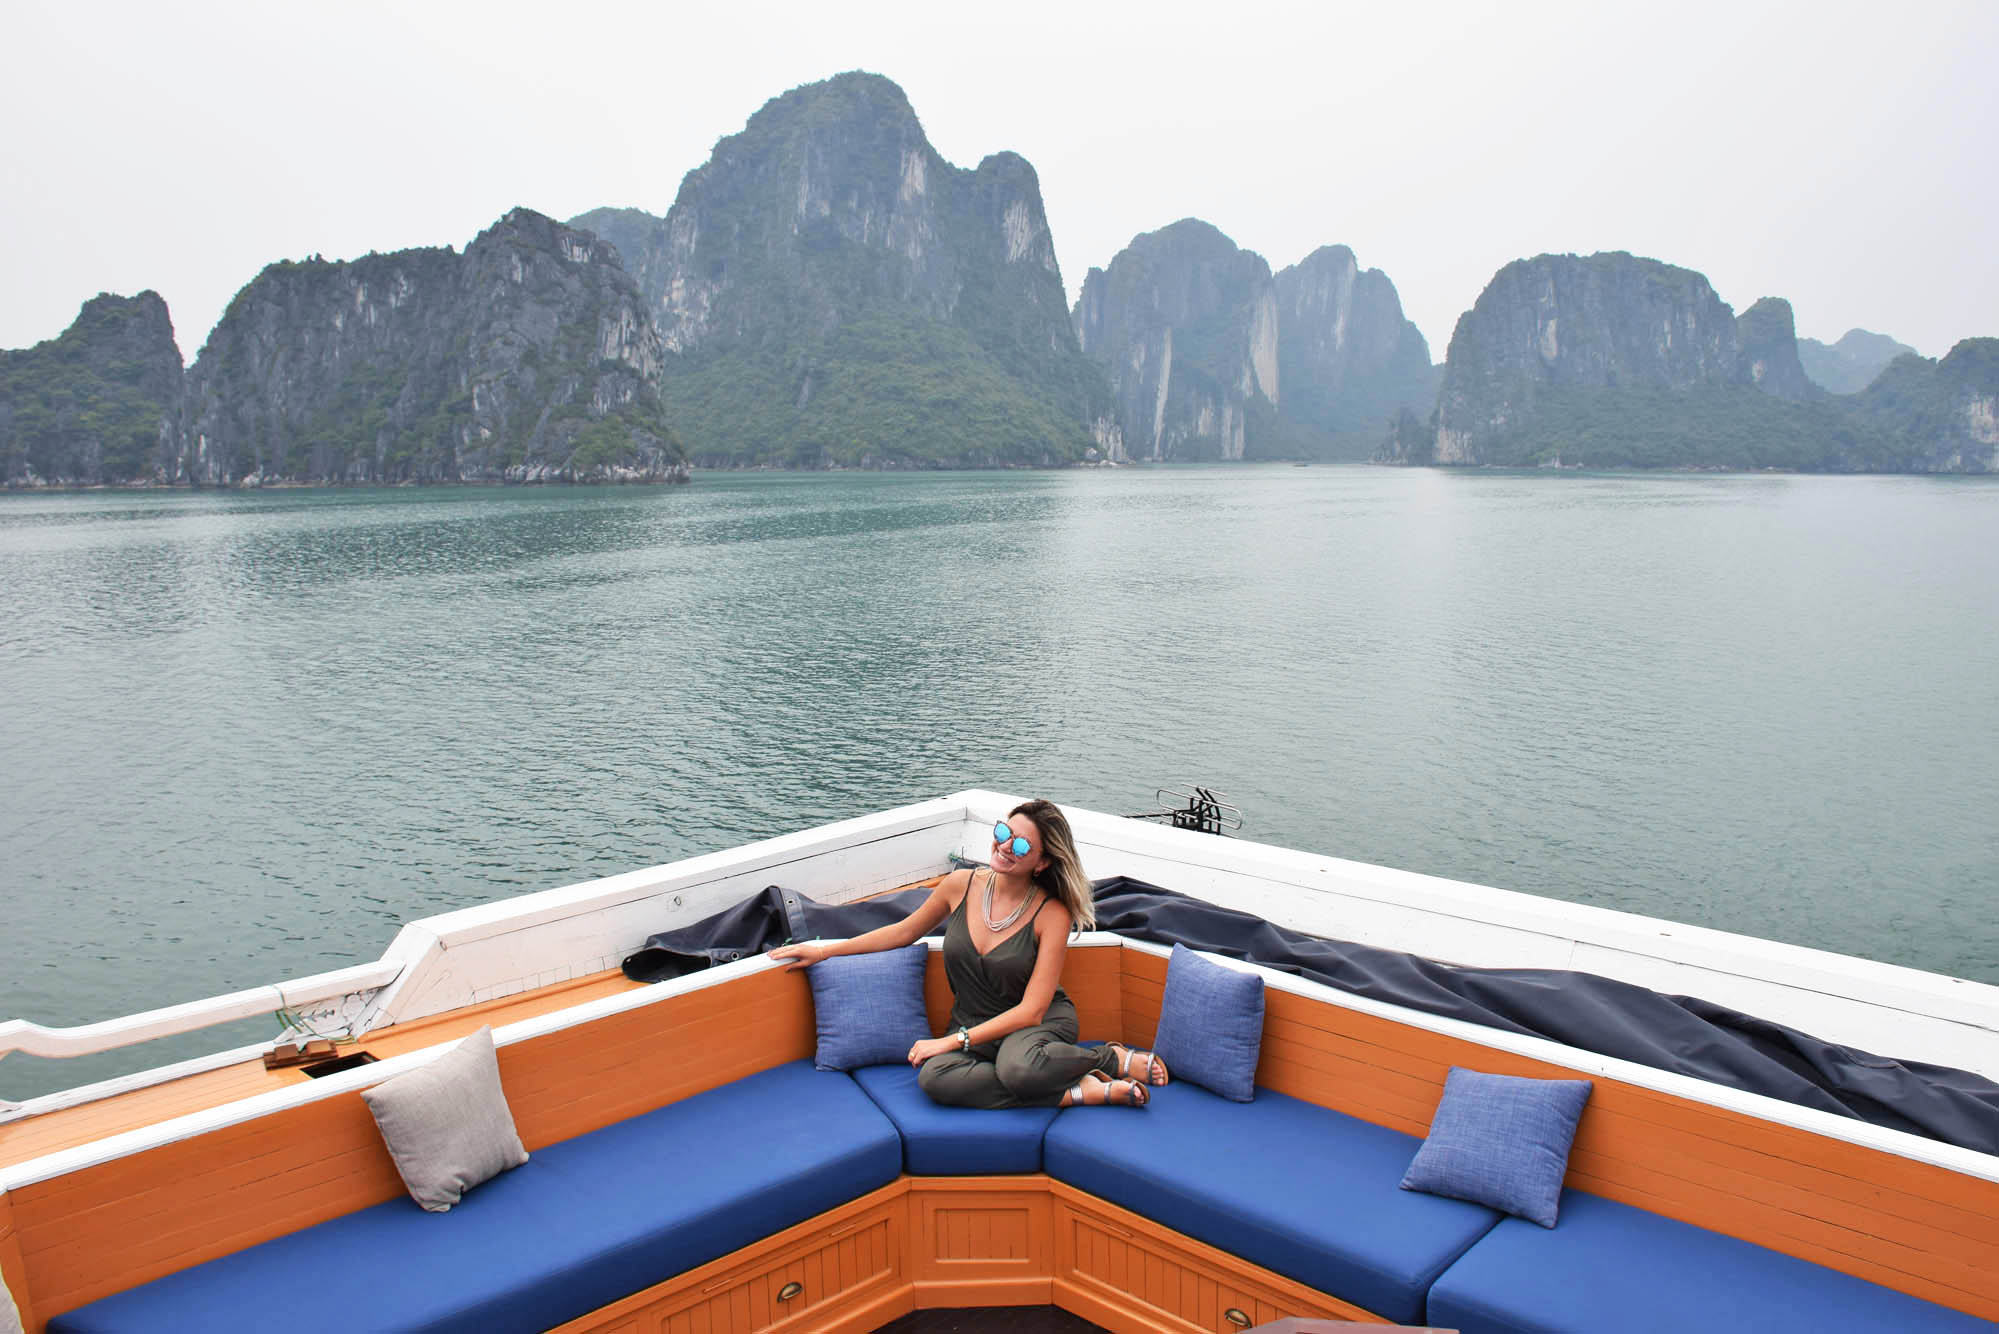 halong-bay-vietna-dicas-paradise-luxury-cruise